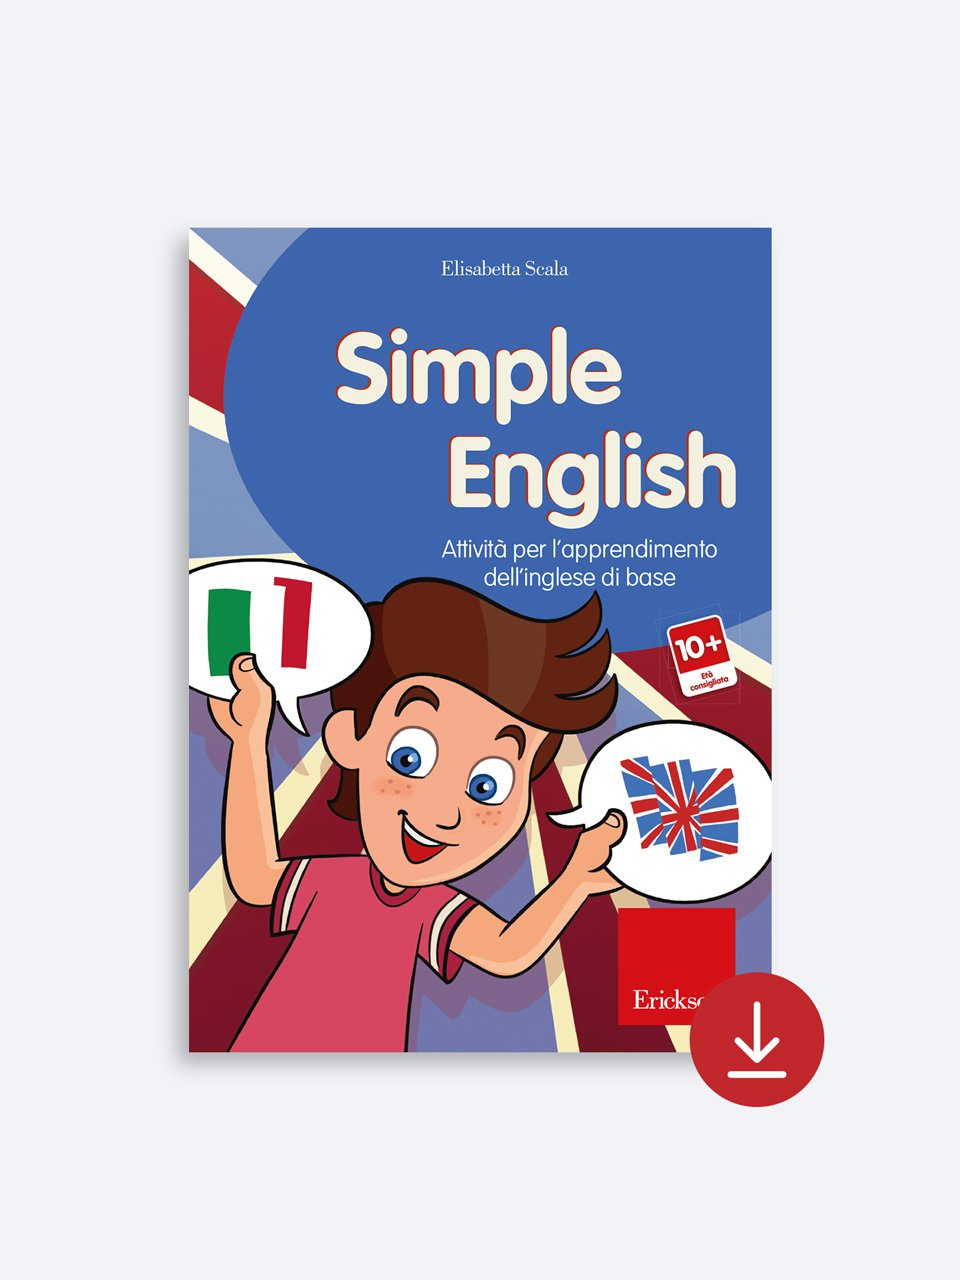 Simple English - Français facile - Libri - App e software - Erickson 2